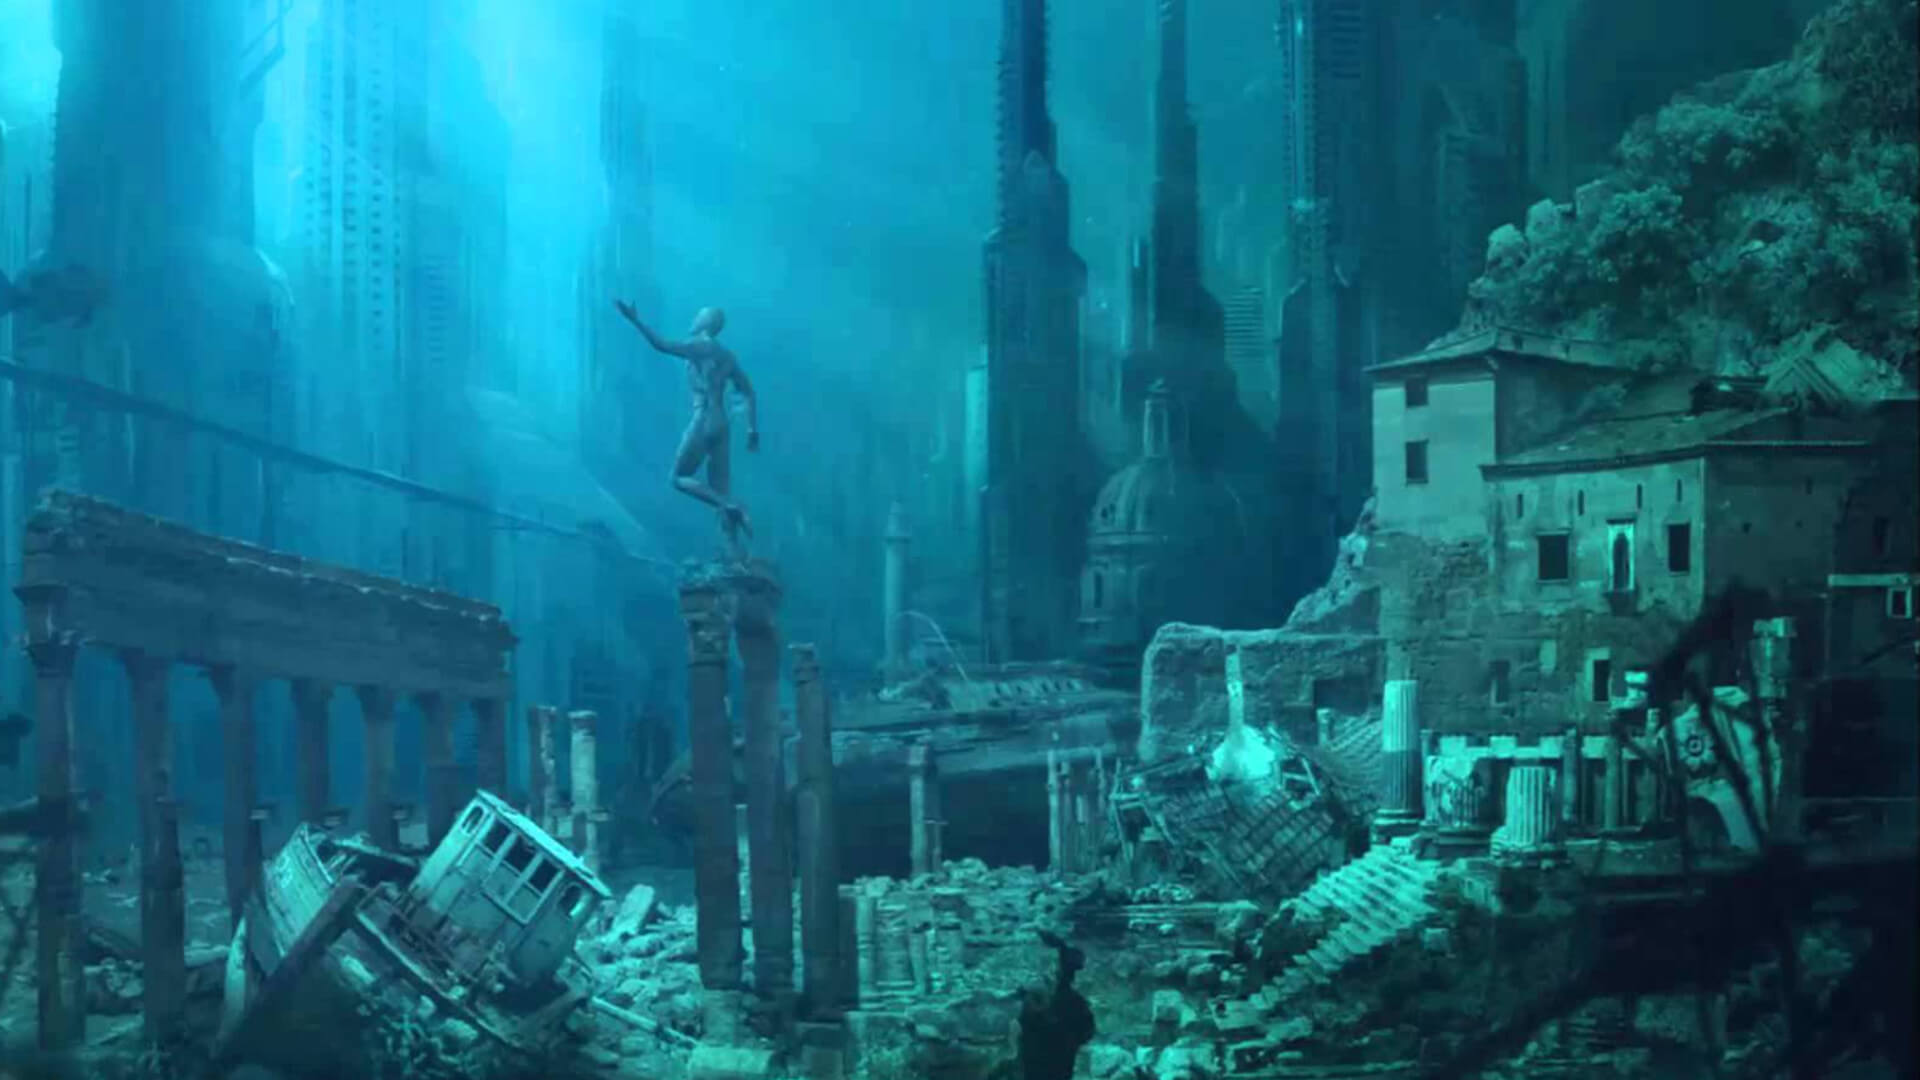 Residents Of Lost City Of Atlantis Still Waiting For Clear Evidence Sea Levels Are Rising